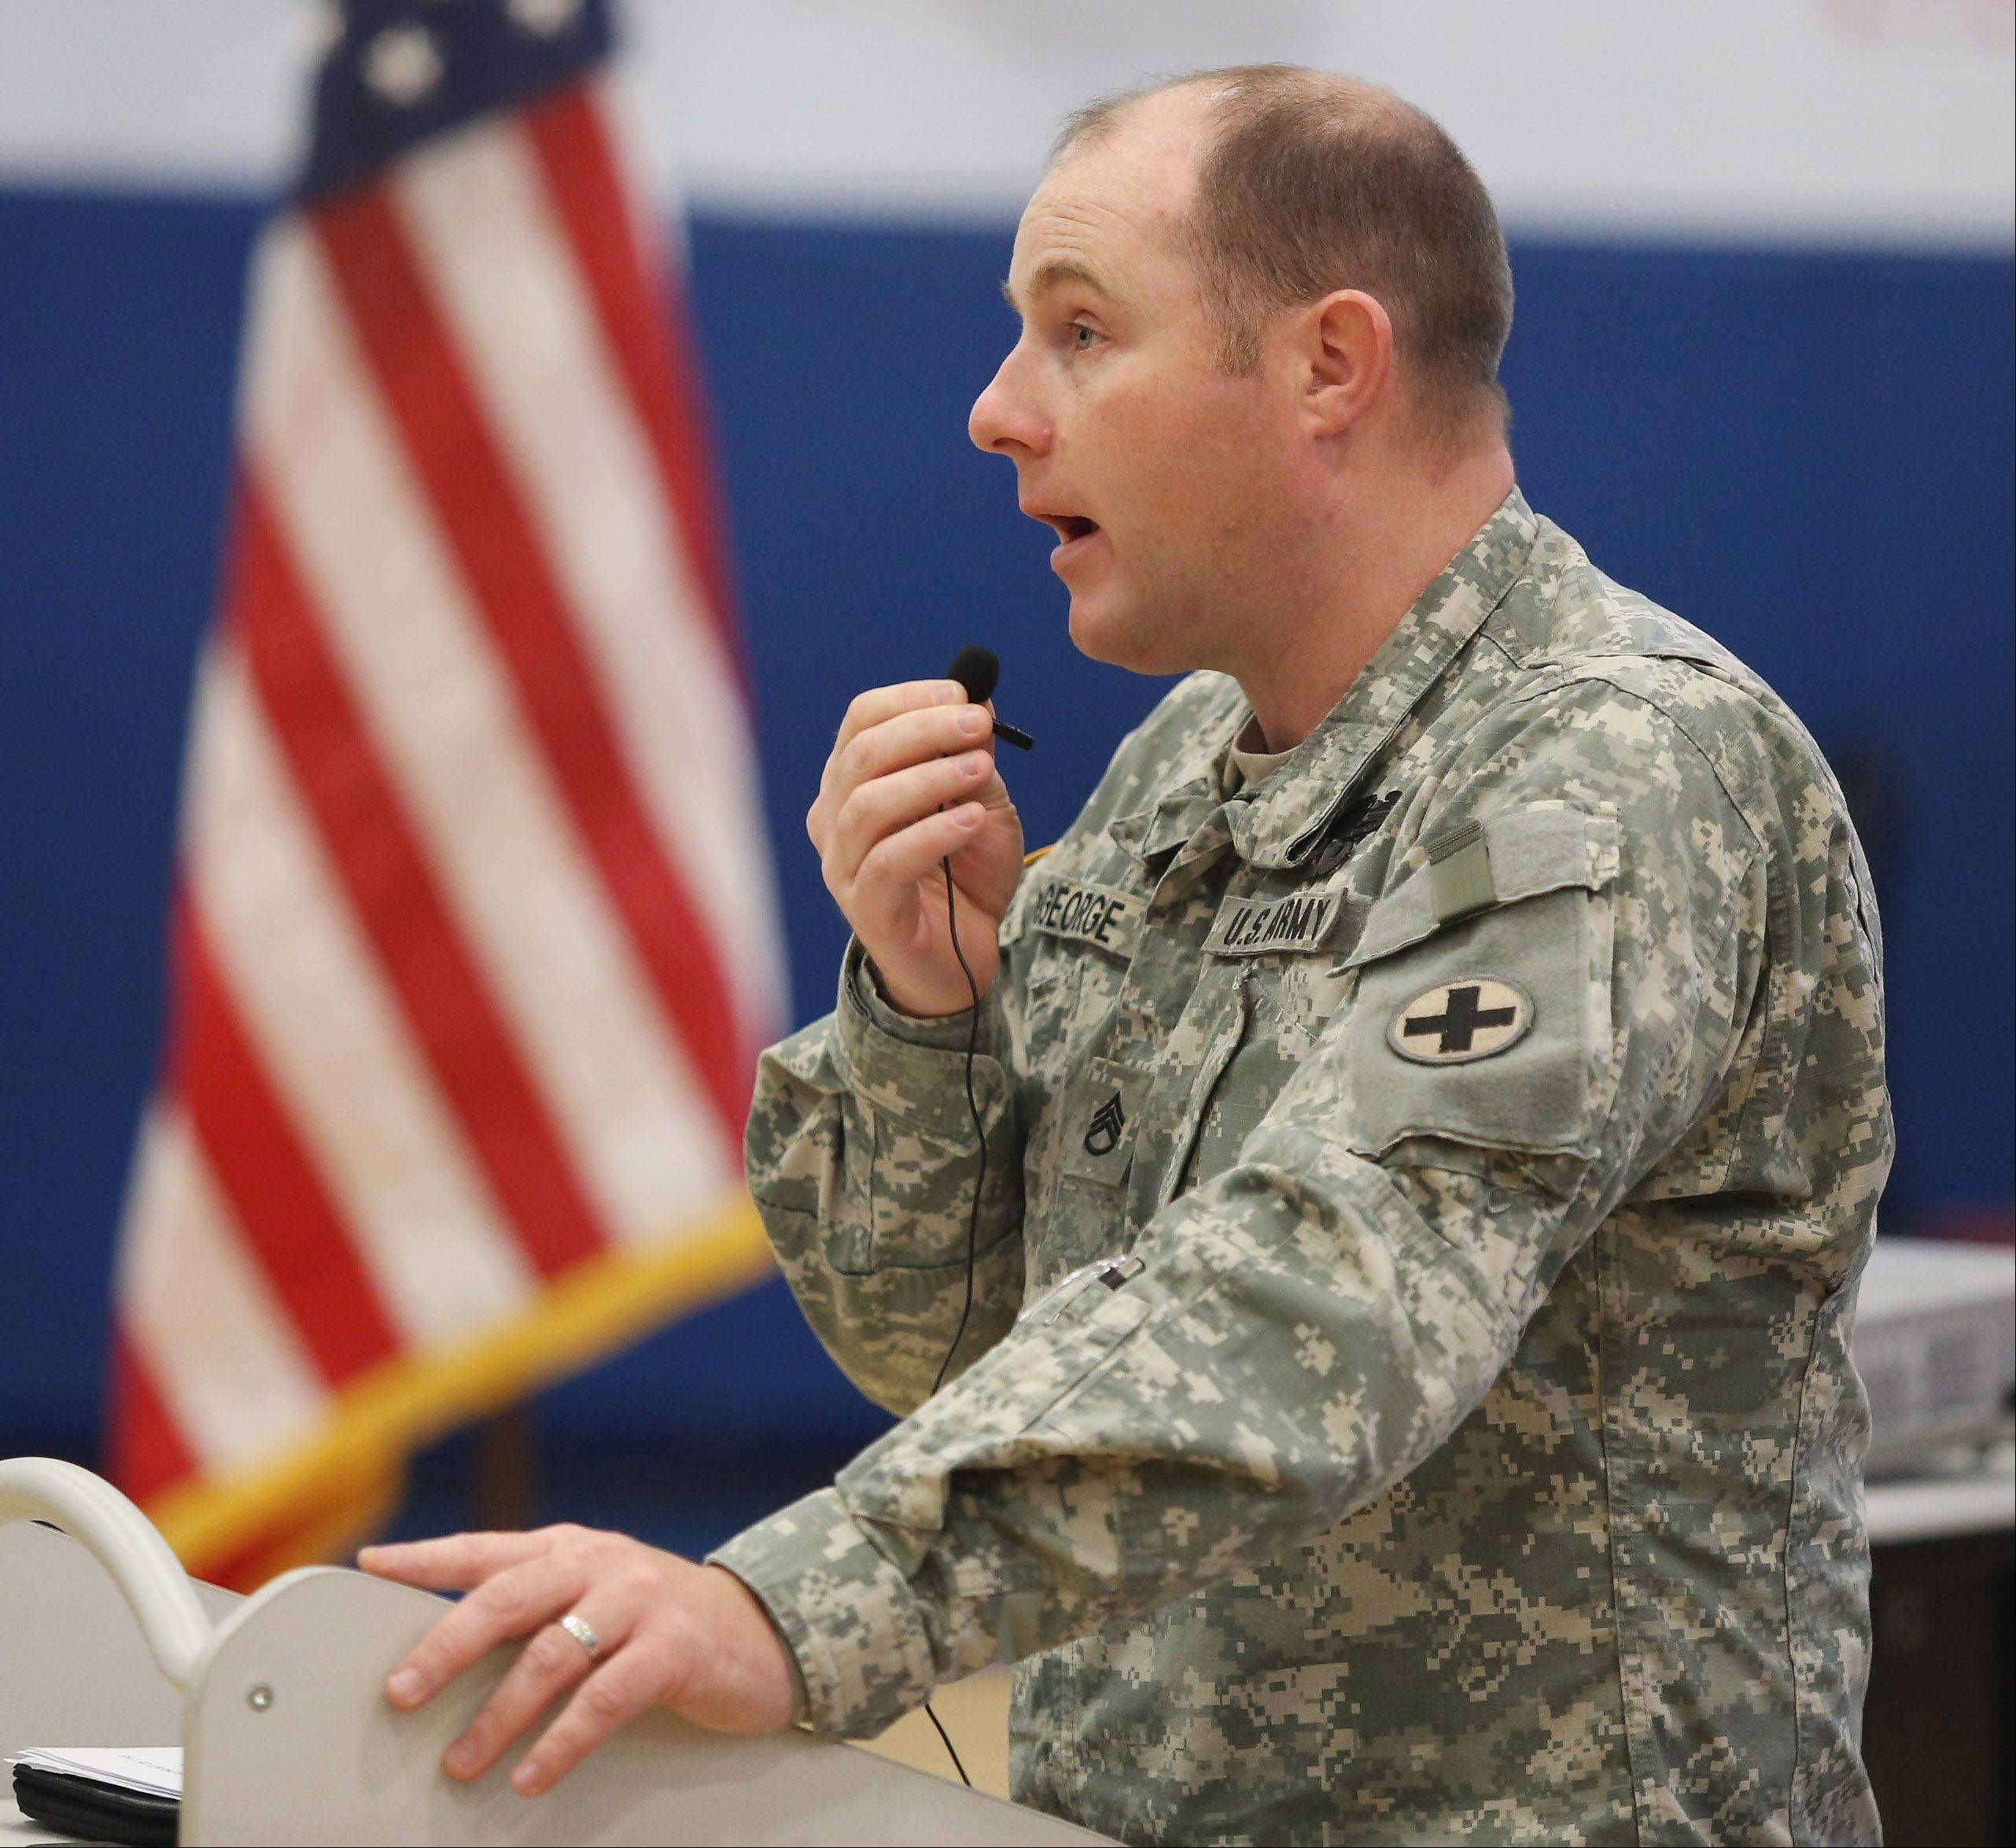 Army Staff Sgt. Patrick DeGeorge explains the history of Veterans Day during an assembly Monday at Frederick School in Grayslake.